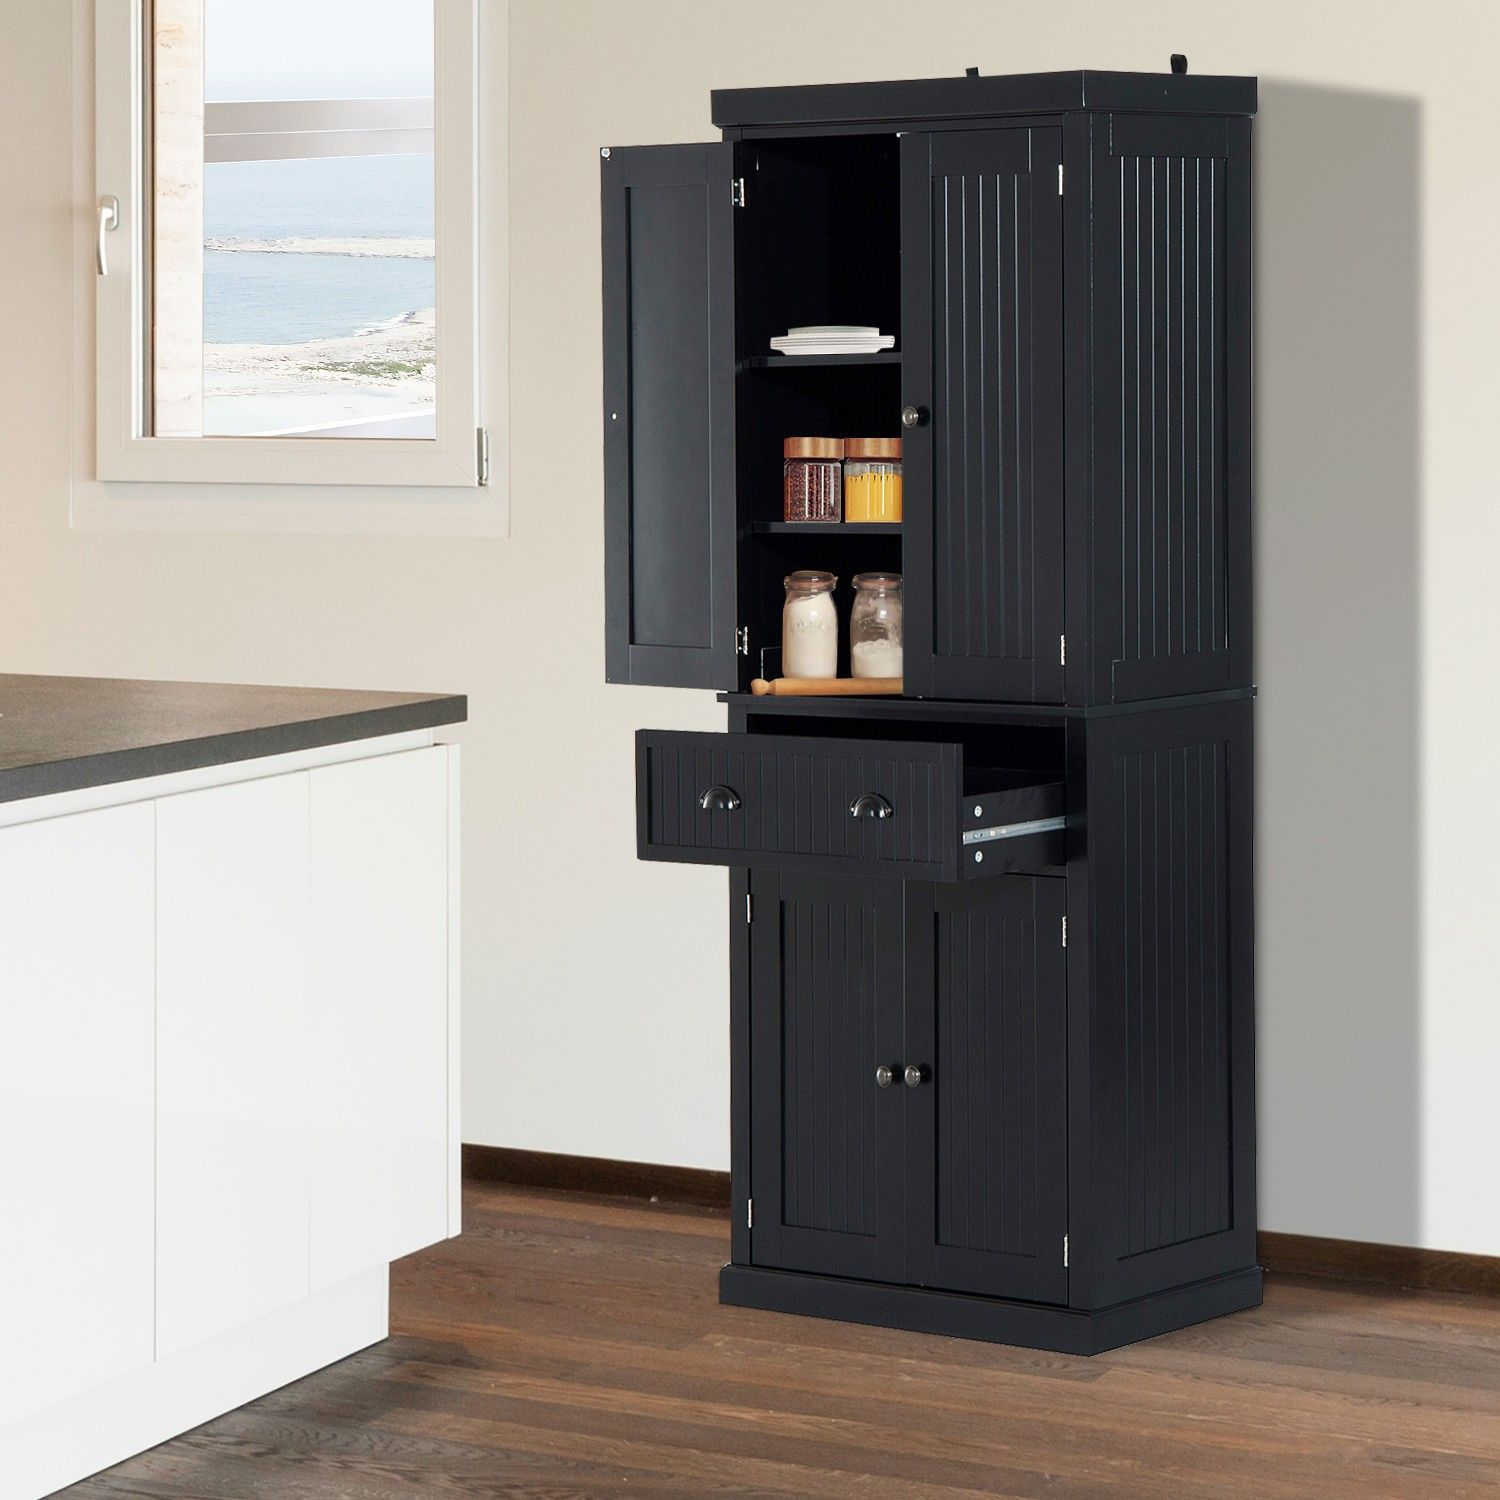 Black Pantry Cabinet For Kitchen